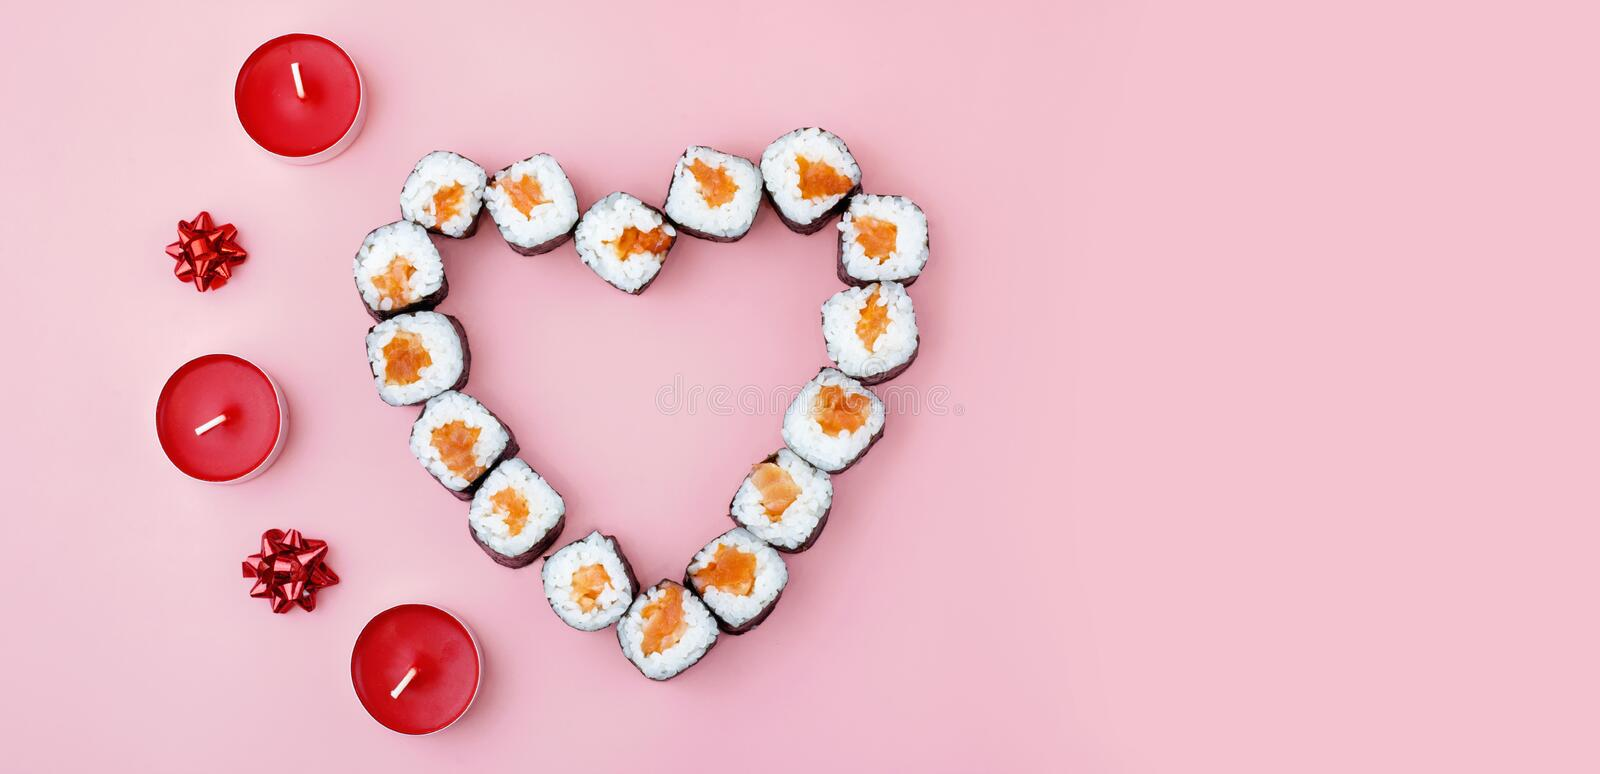 Salmon sushi rolls laid out in the shape of a heart, next to red candles and bowson a pink background. The concept of Japanese royalty free stock photo